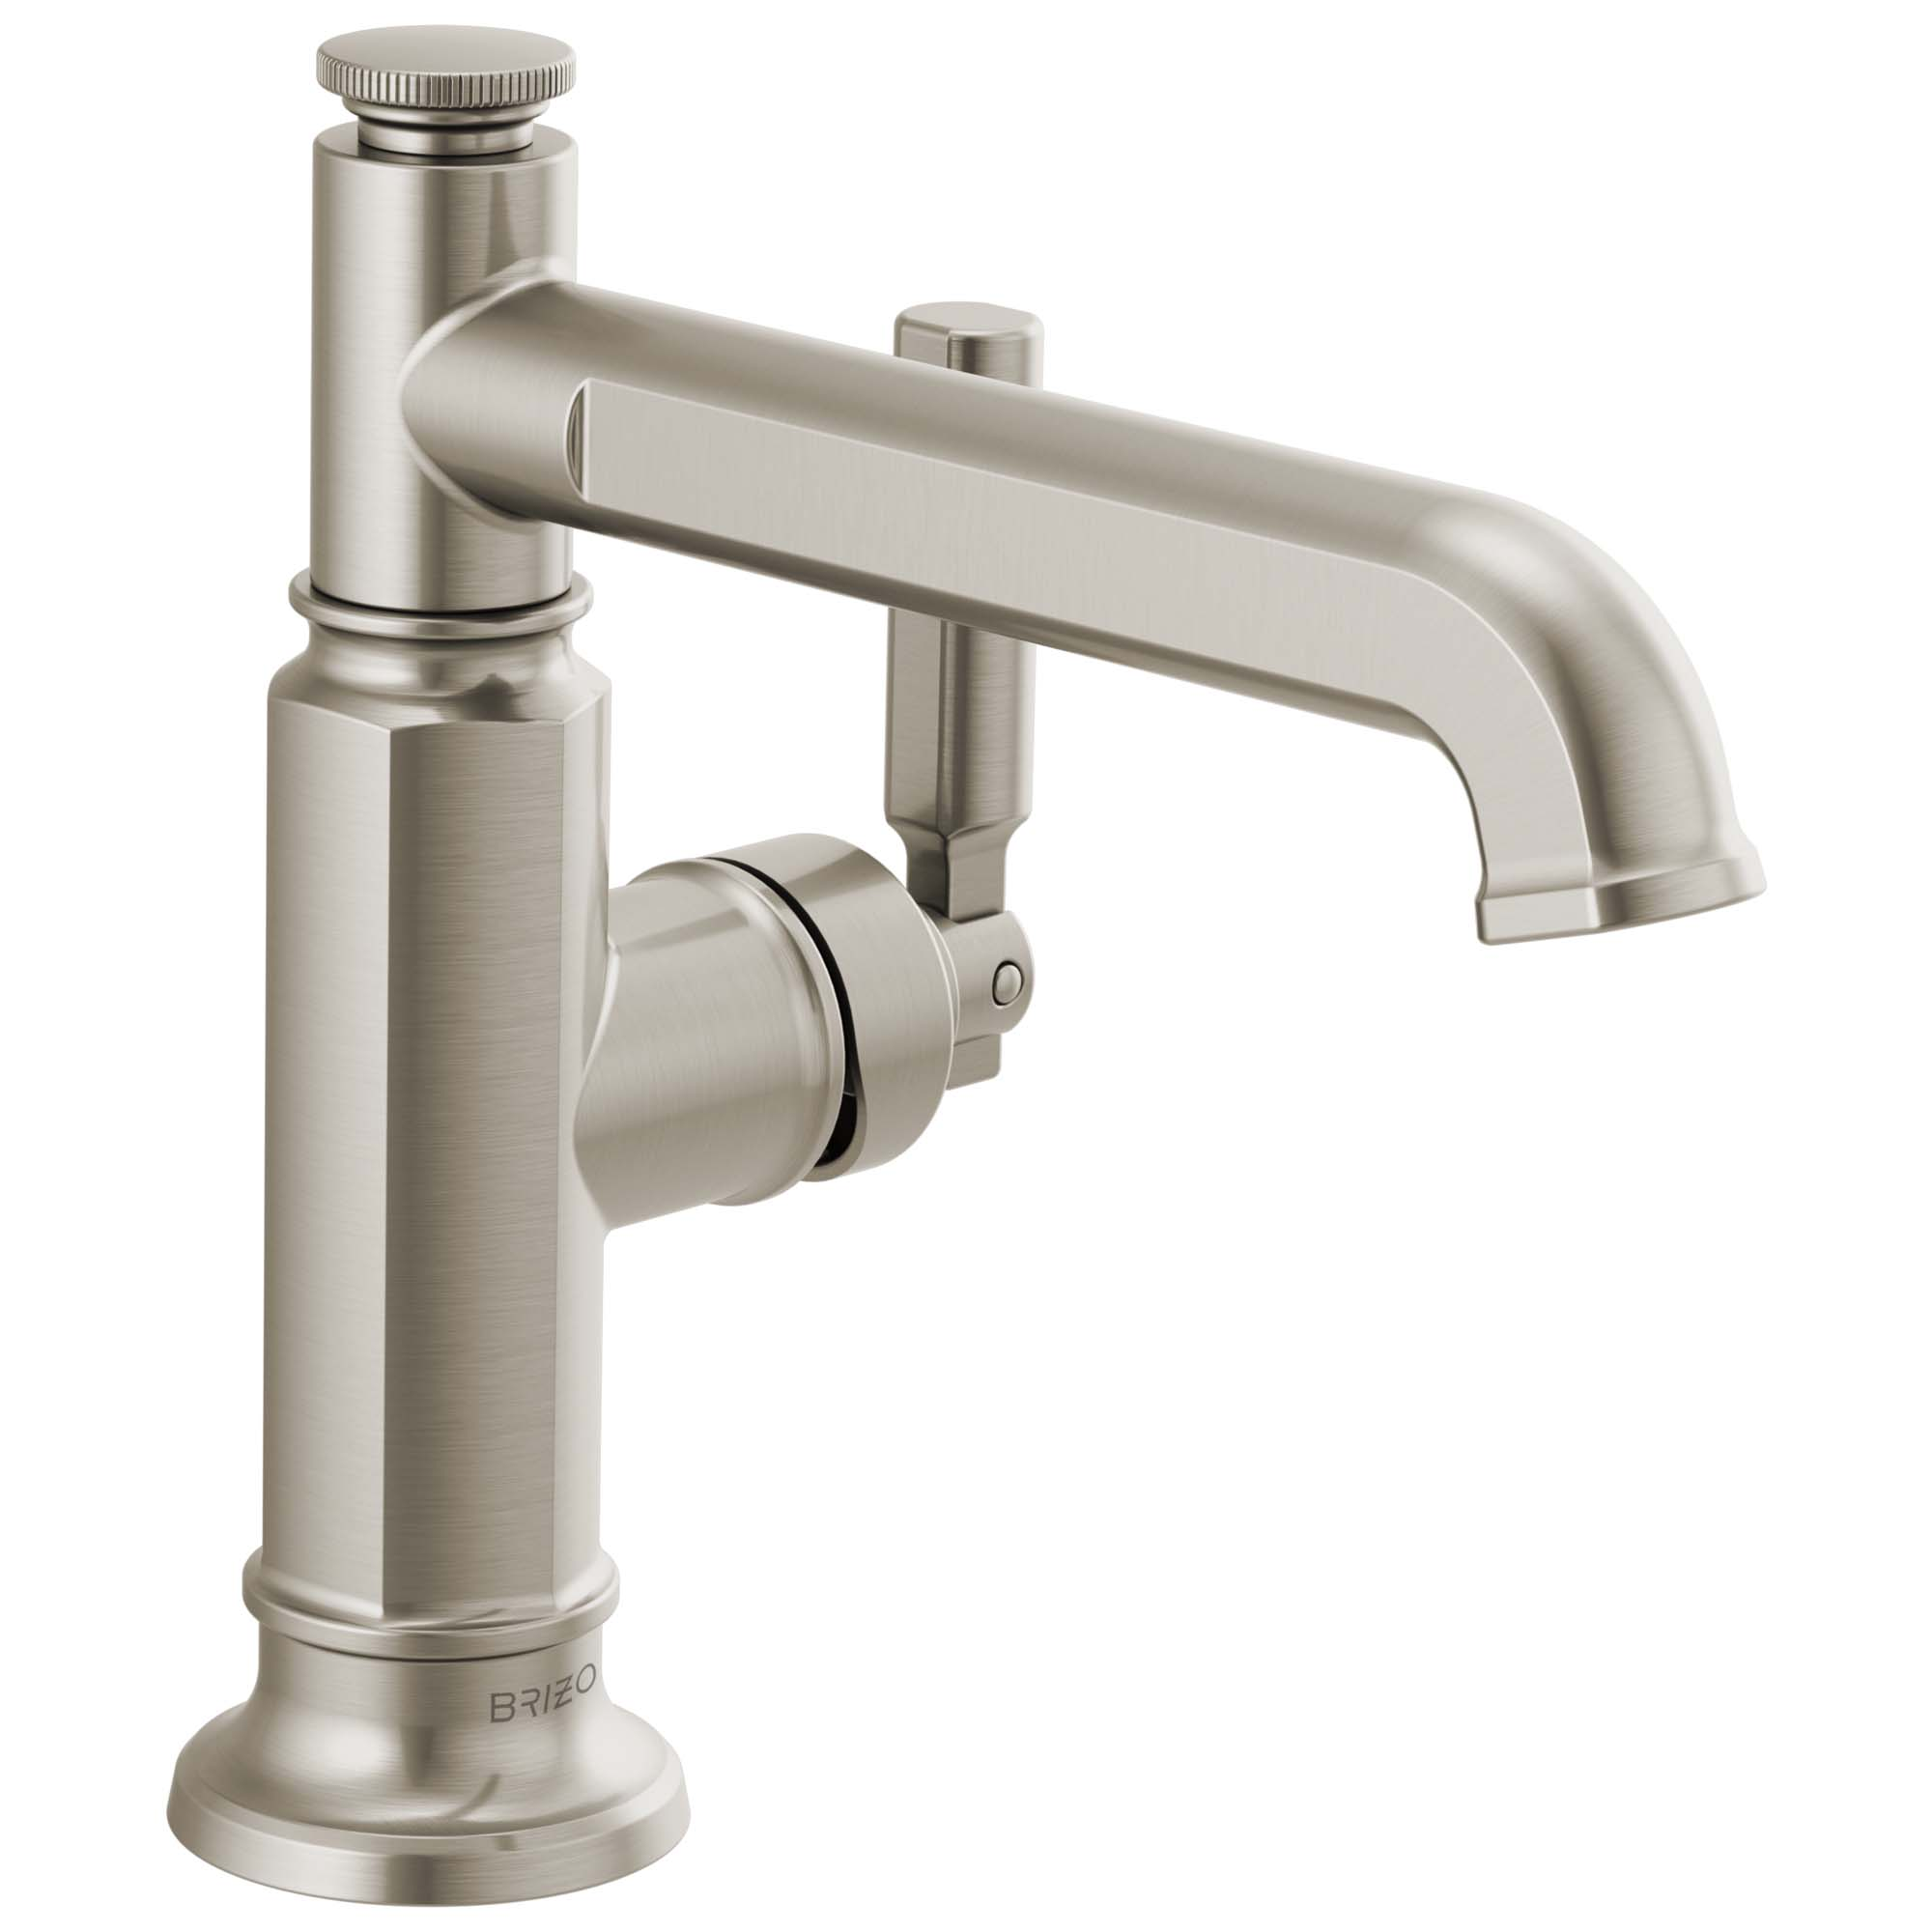 Brizo 65076LF-NK Brizo Invari: Single-Handle Lavatory Faucet - Luxe Nickel